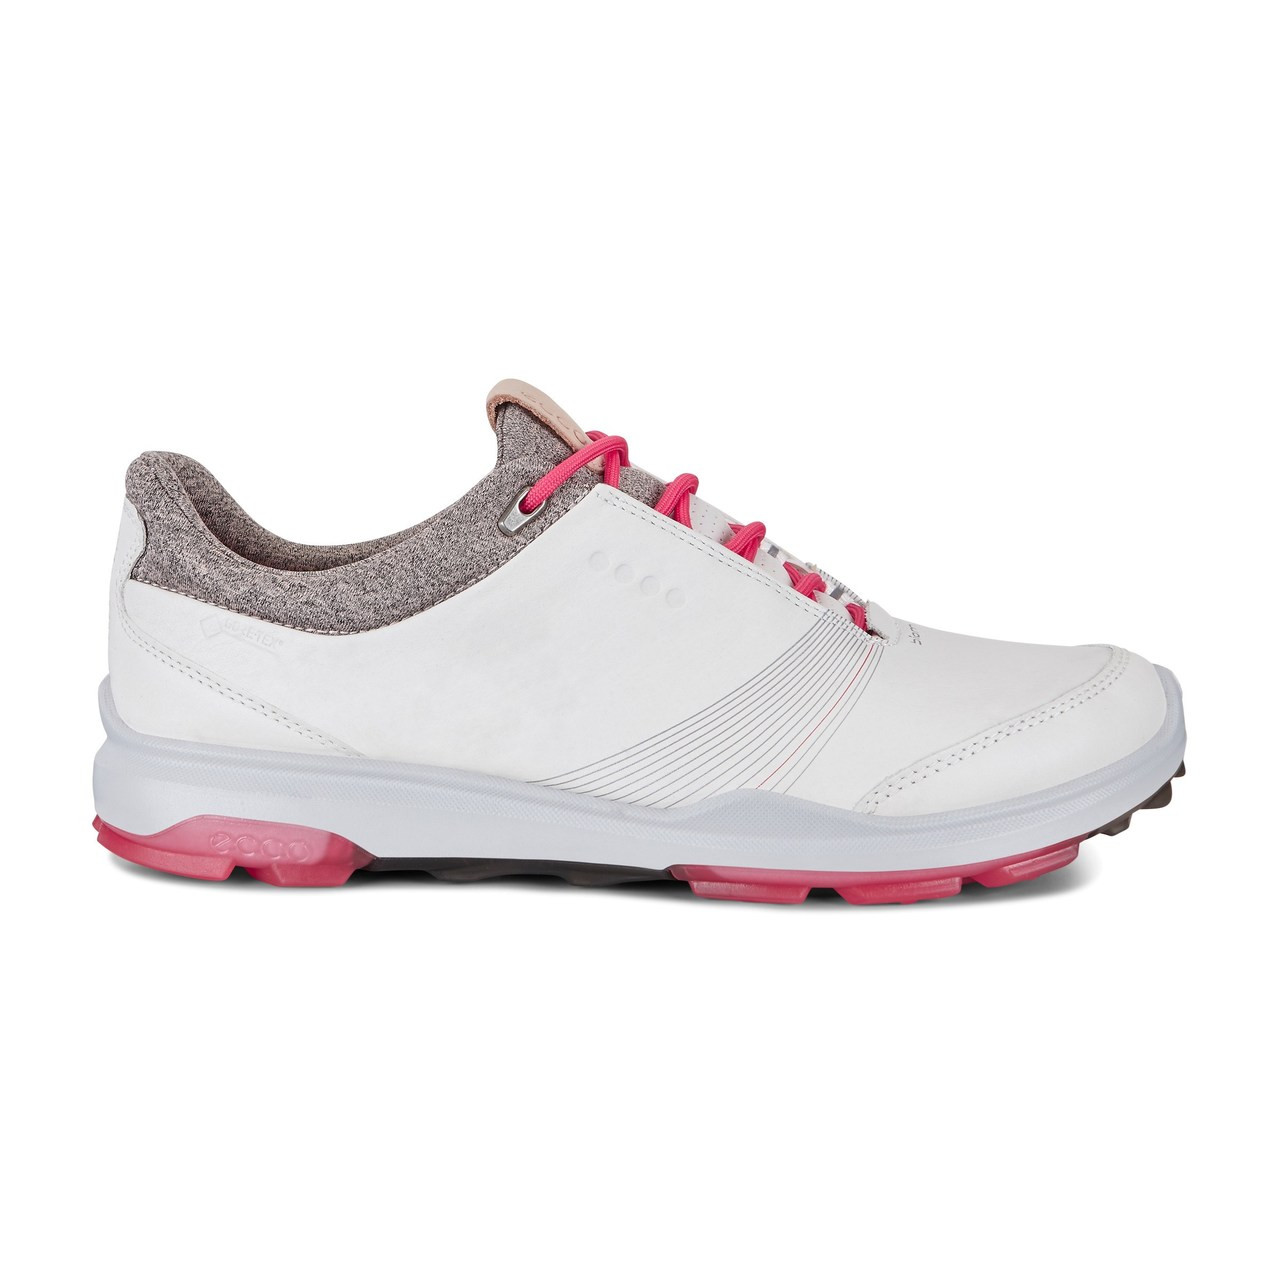 148a9d402638 Ecco Women s Biom Hybrid 3 Goretex Golf Shoes White Teaberry - New ...